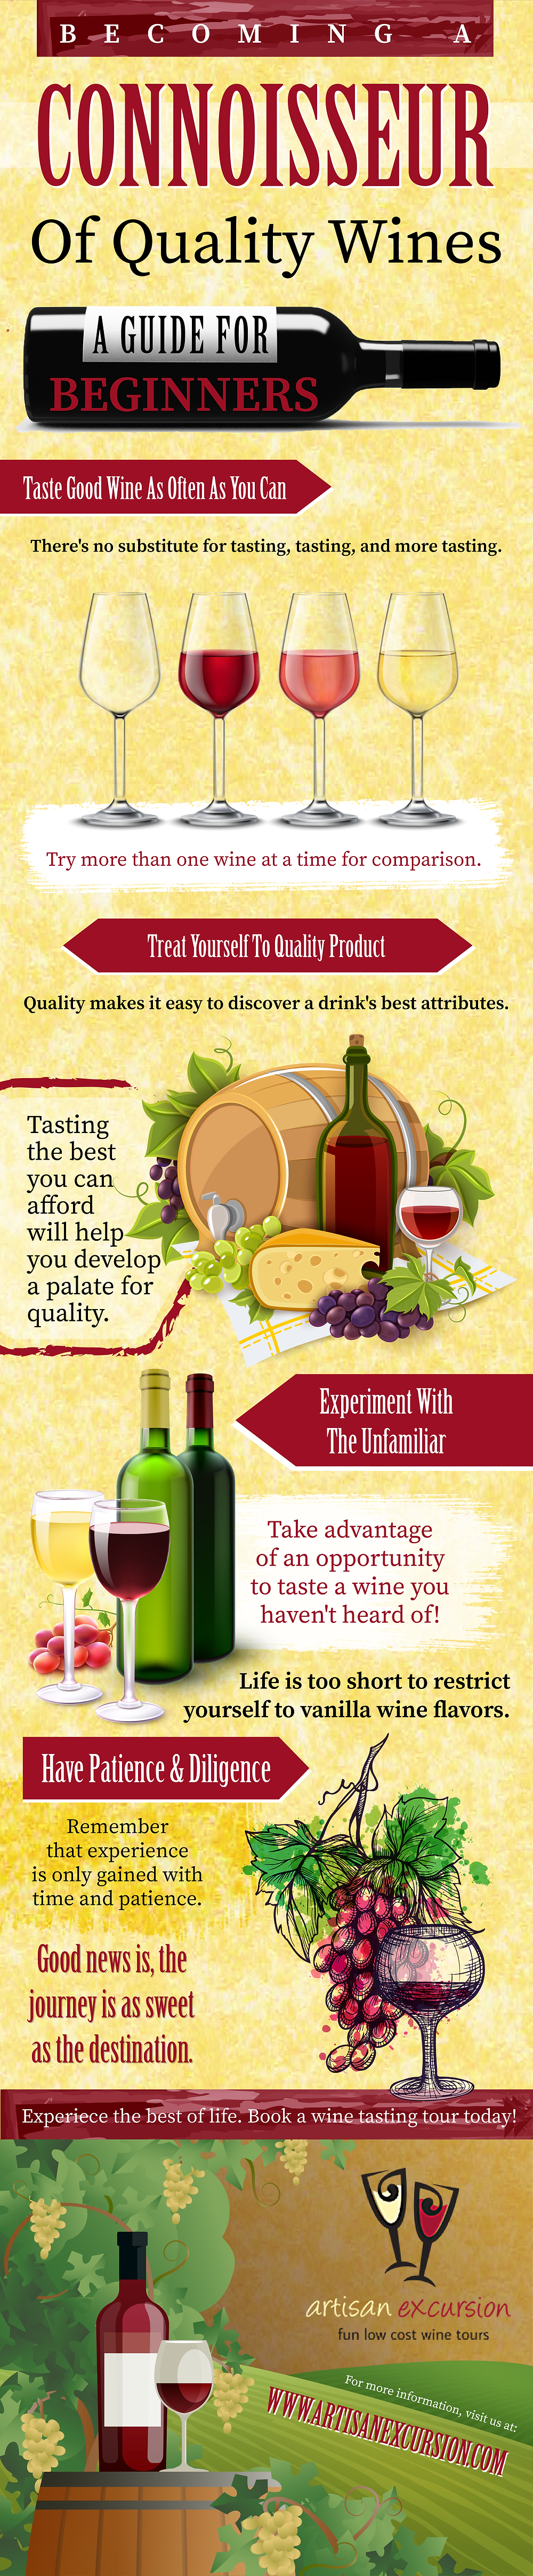 guide to become a wine connoisseur